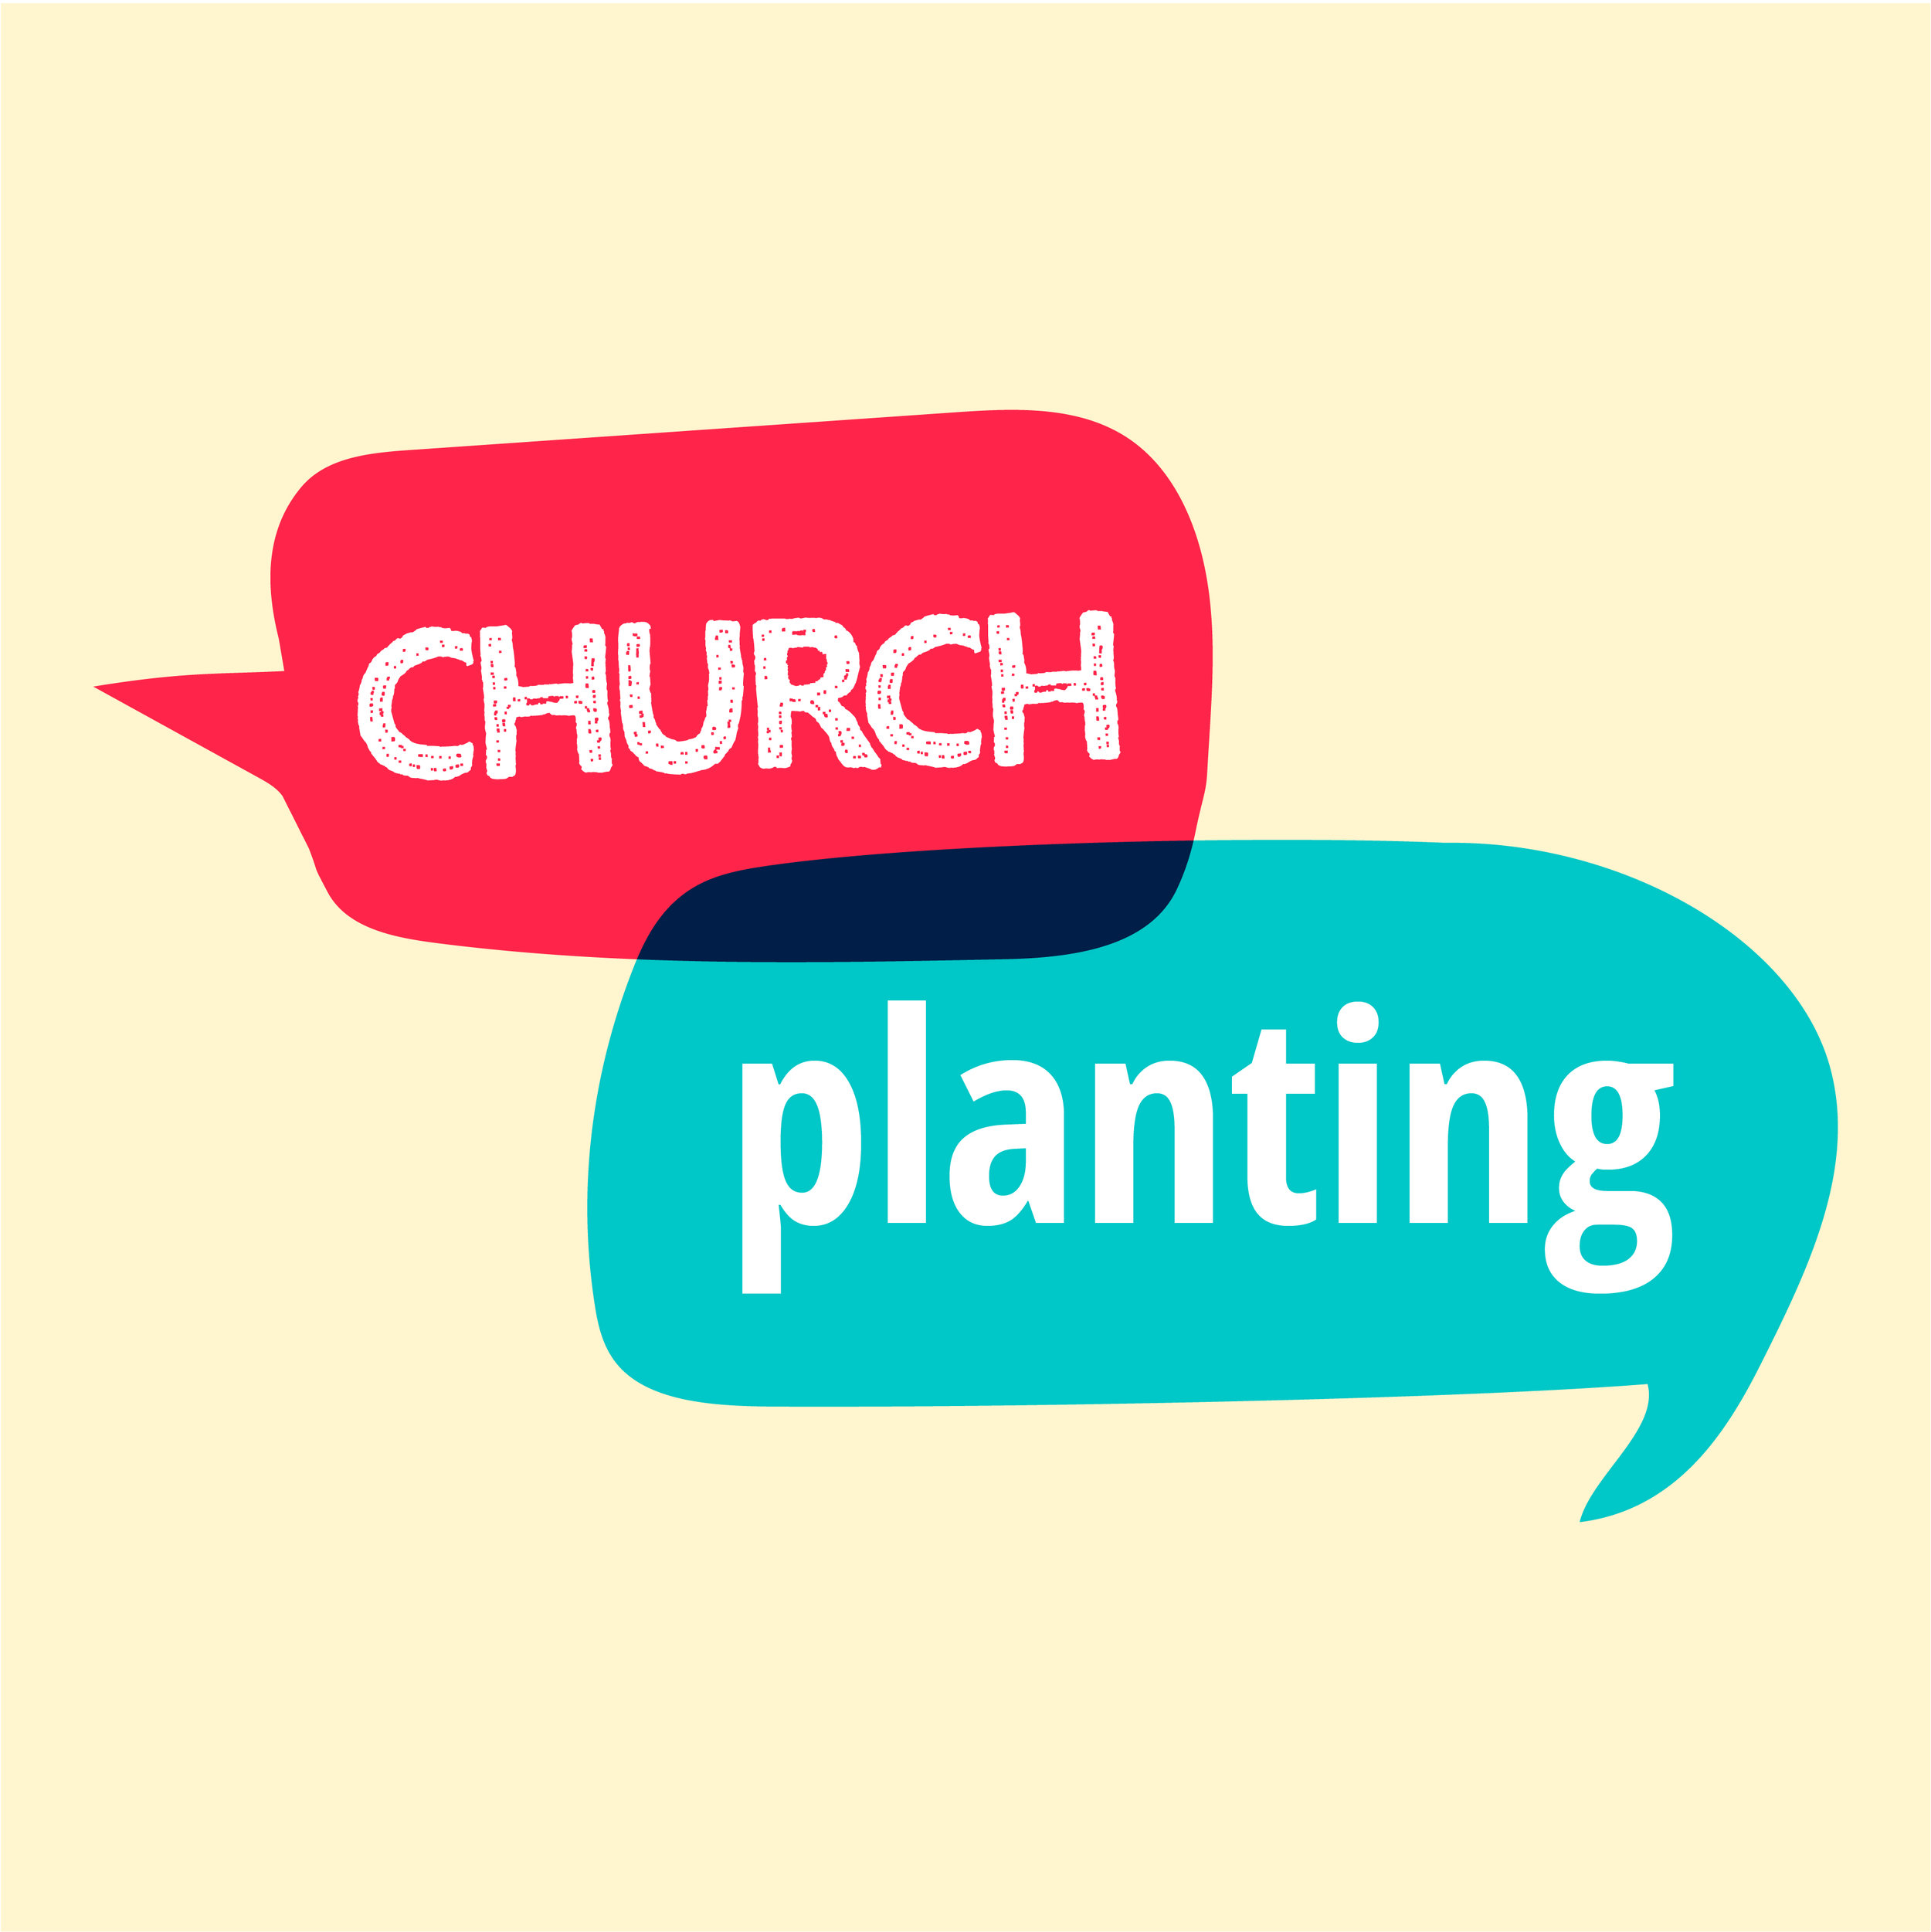 church planting_800x800 - square.jpg